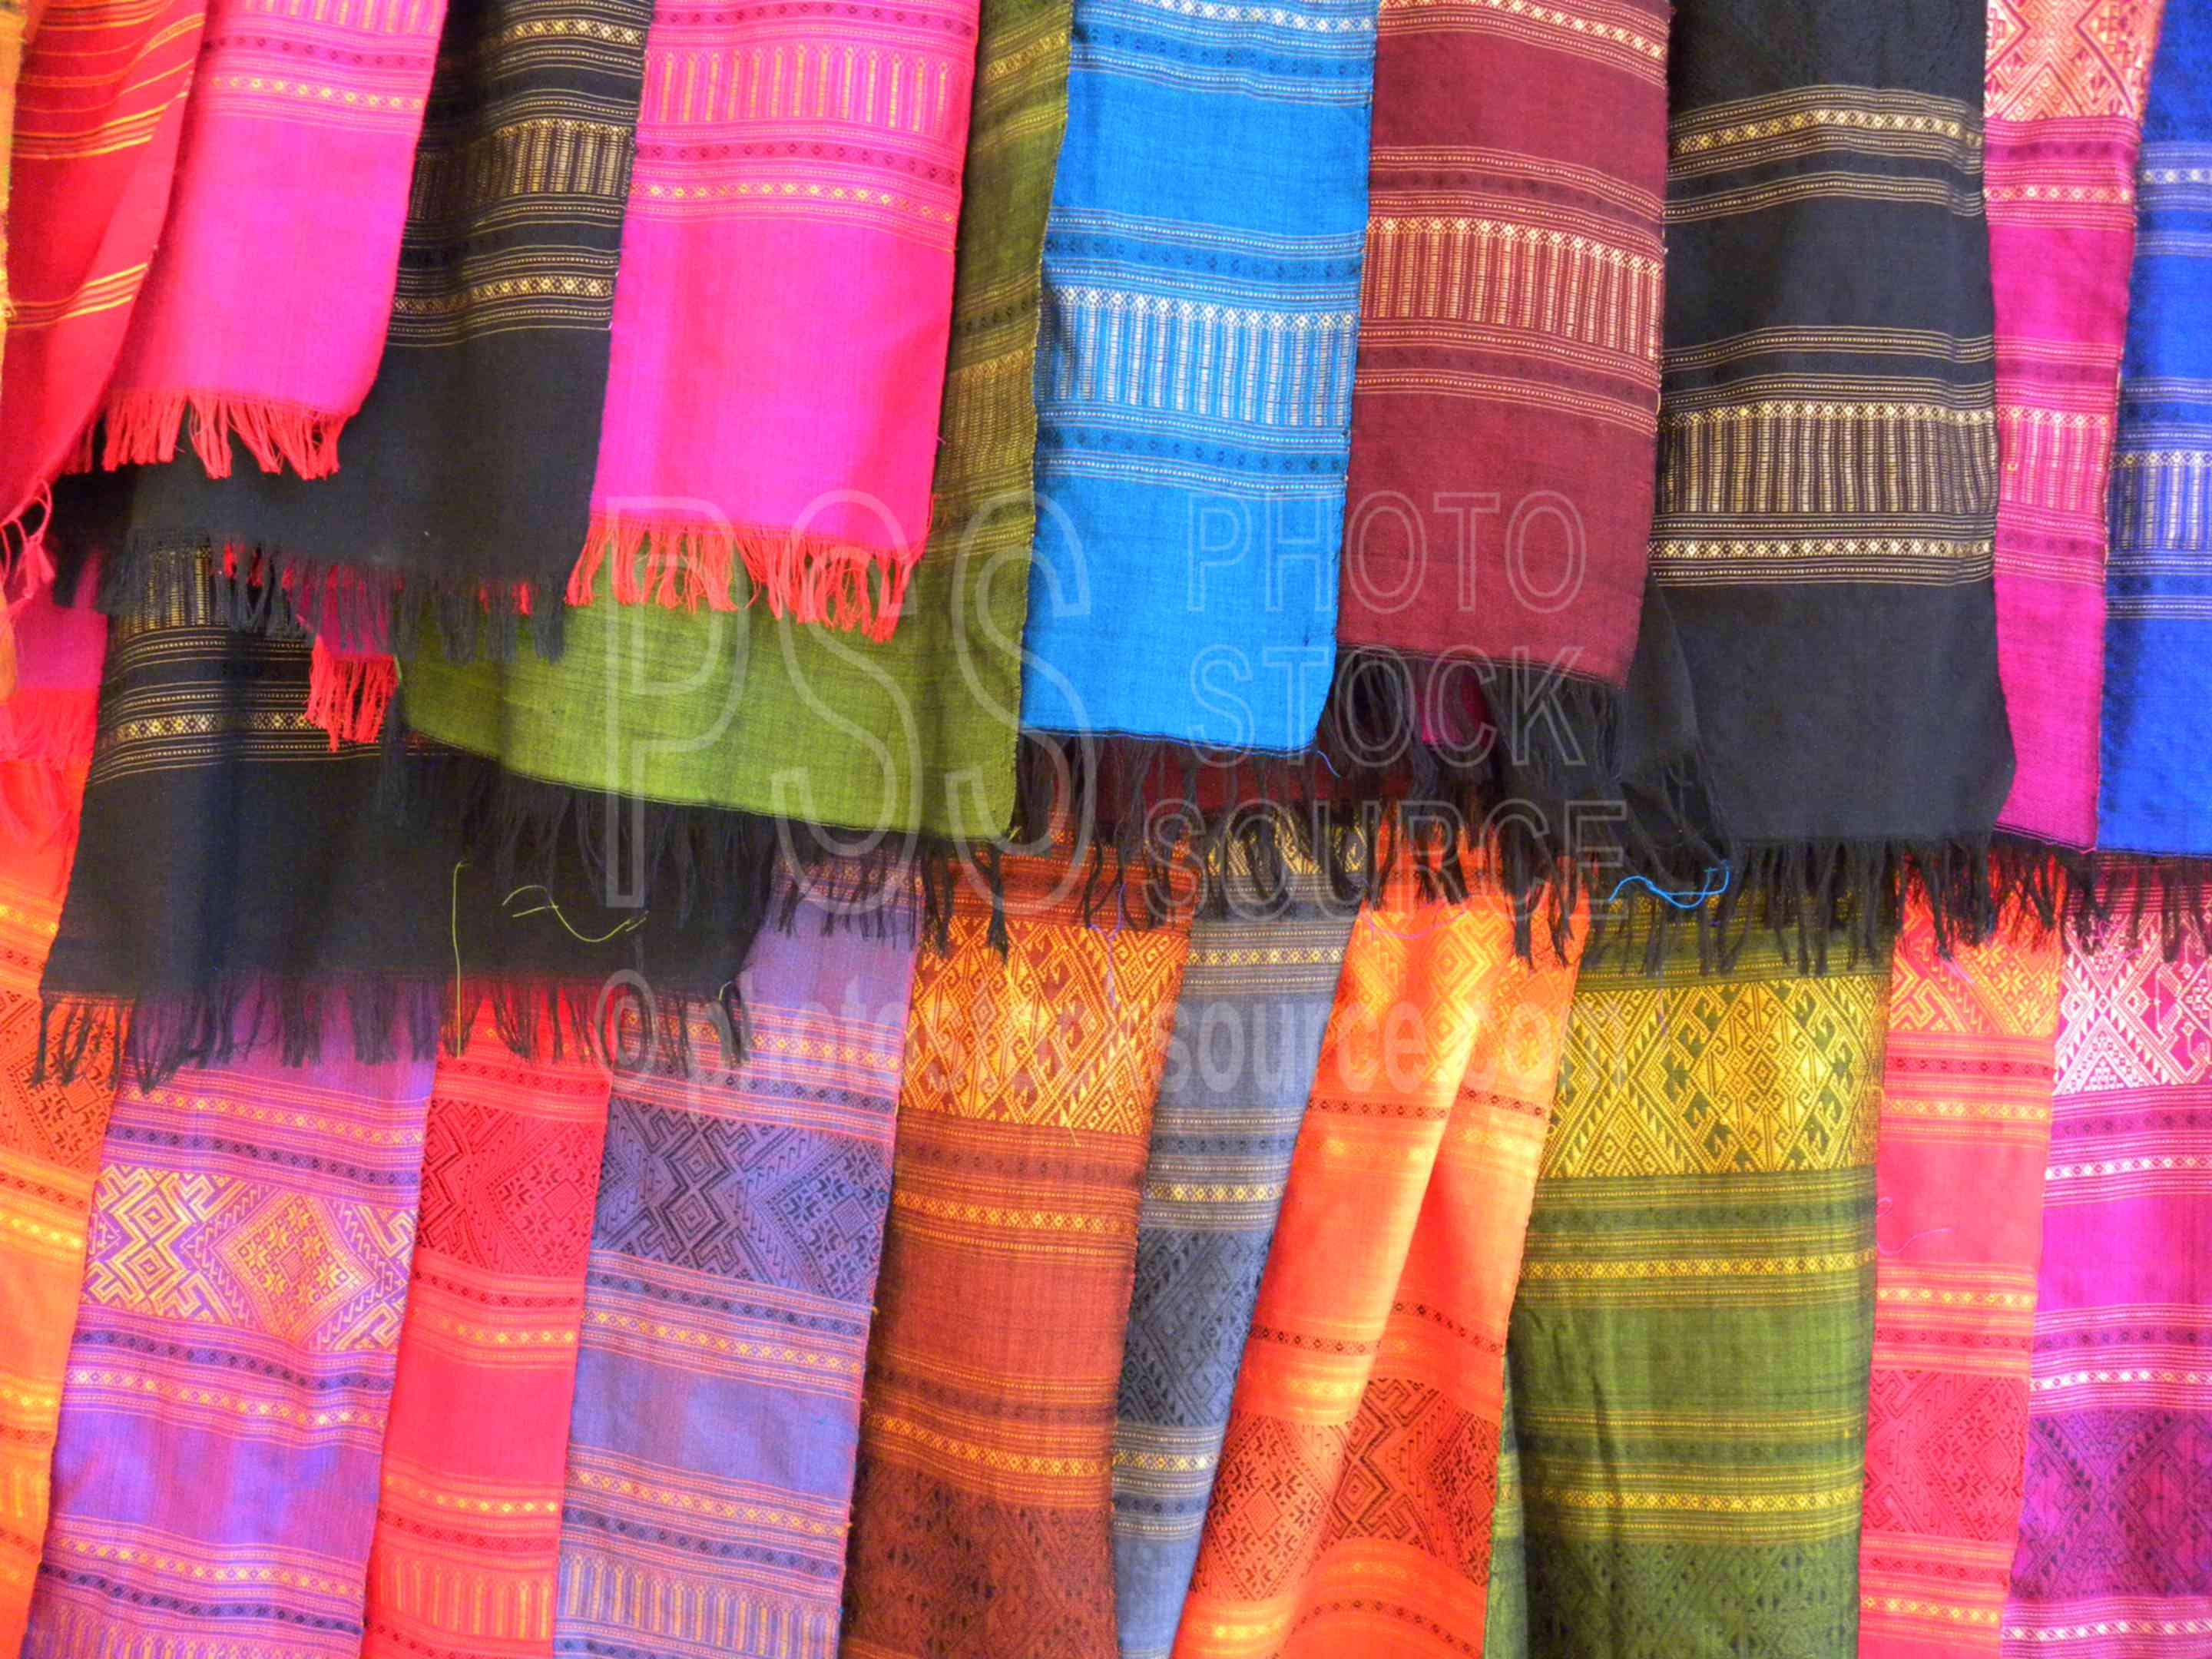 Silk Scarves,fabric,woven,scarf,scarves,color,colorful